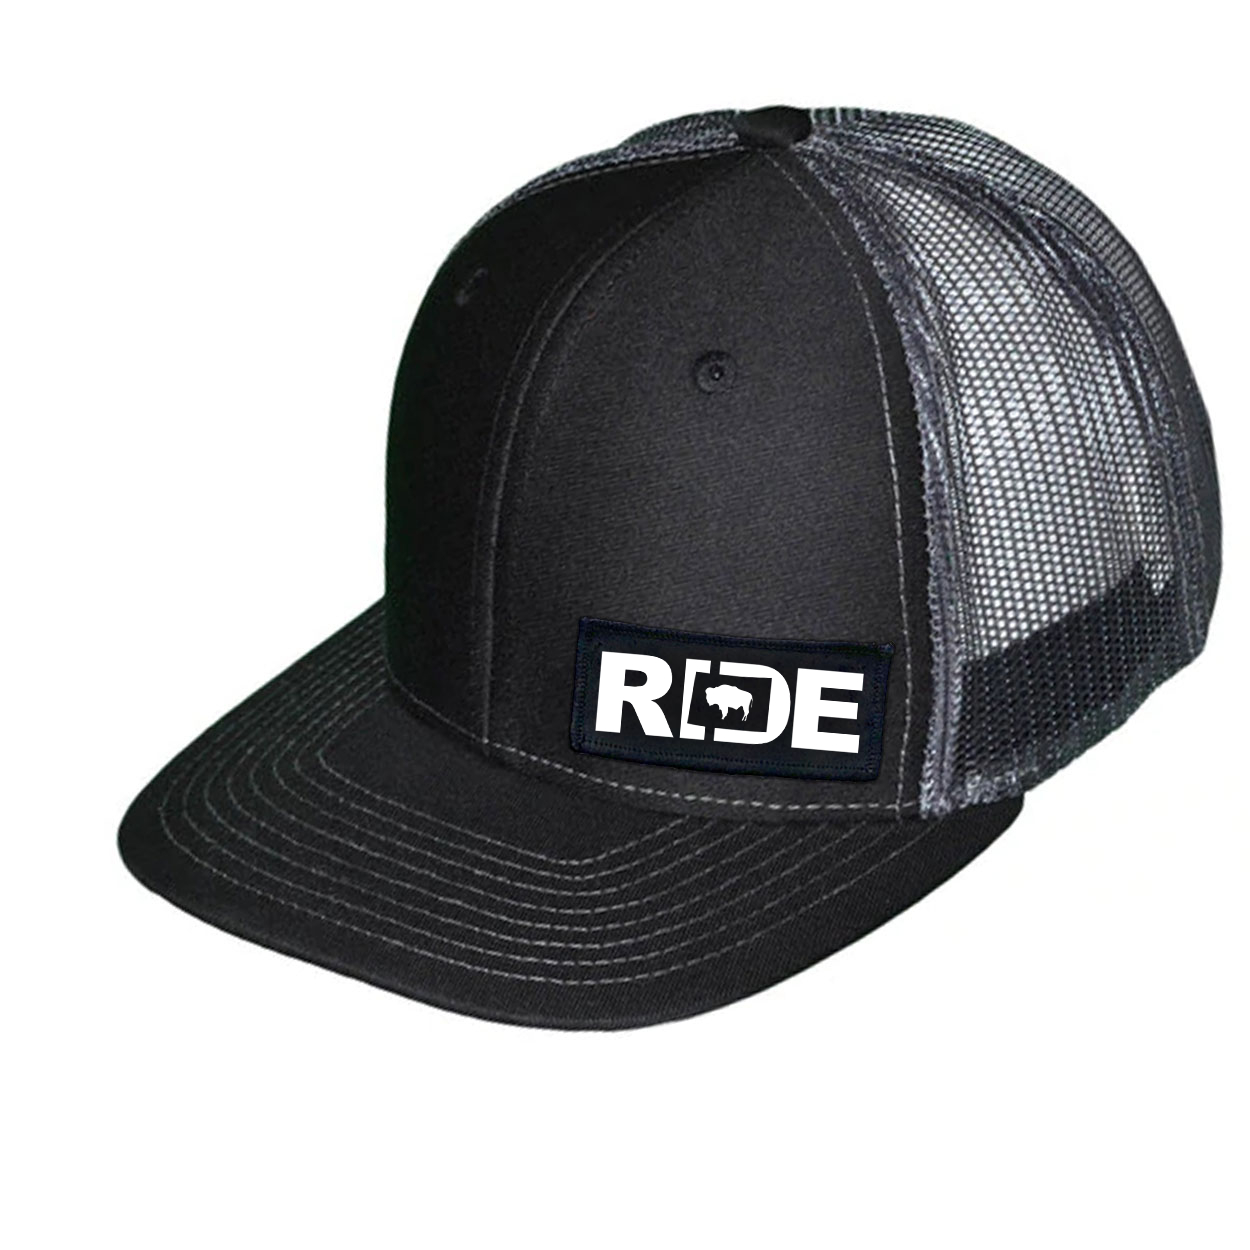 Ride Wyoming Night Out Woven Patch Snapback Trucker Hat Black/Dark Gray (White Logo)